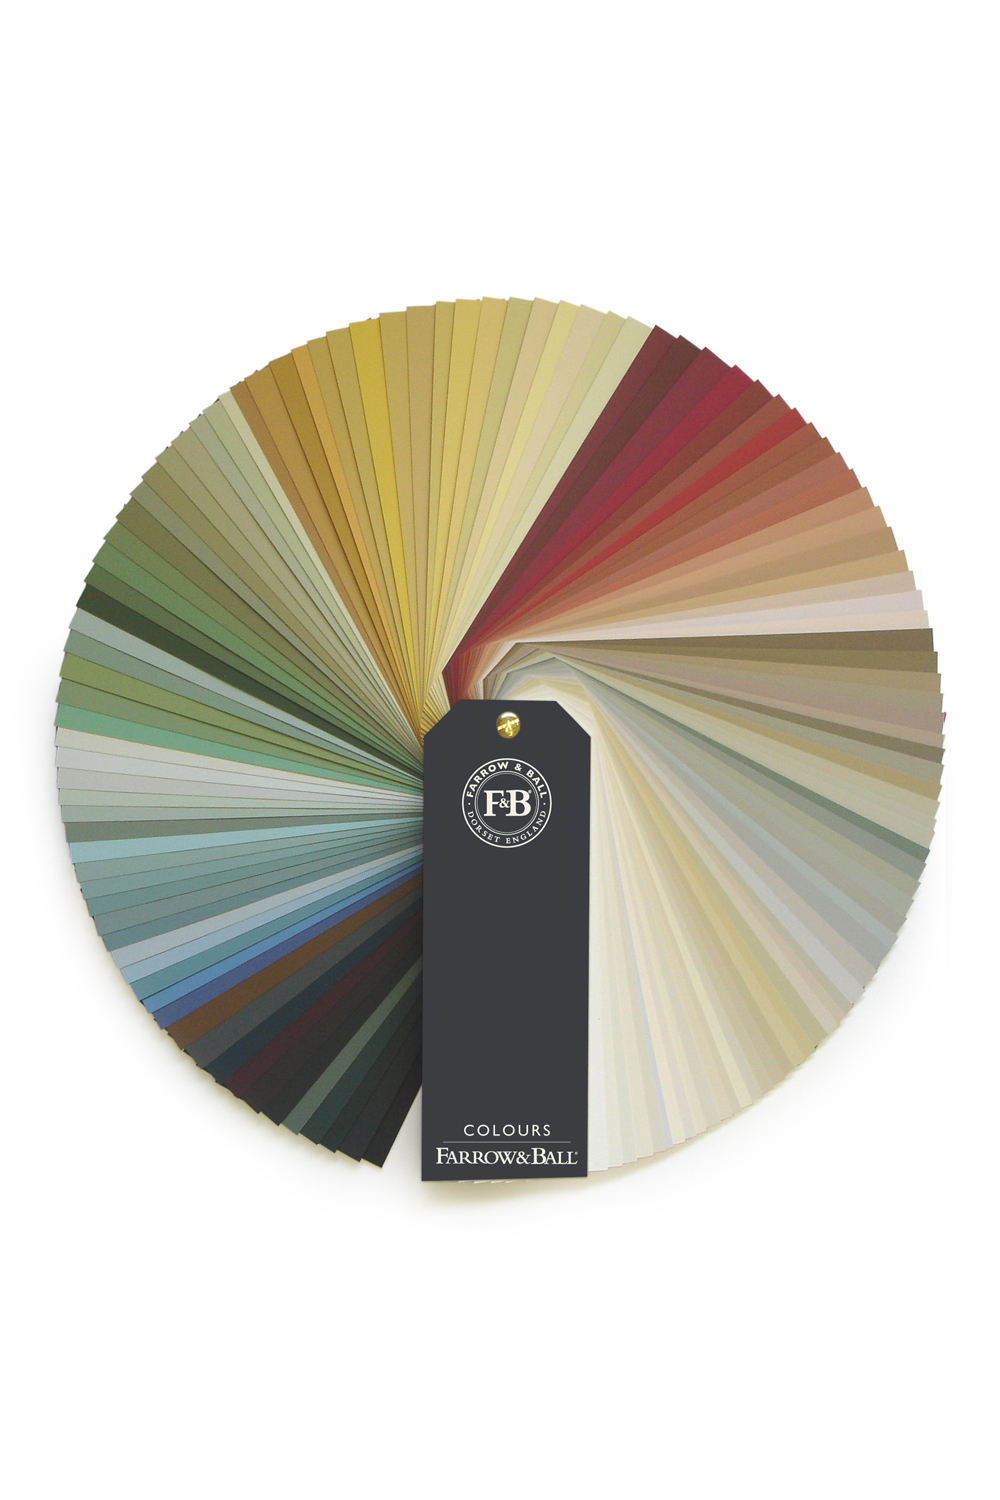 Farrow and Ball Fan Deck